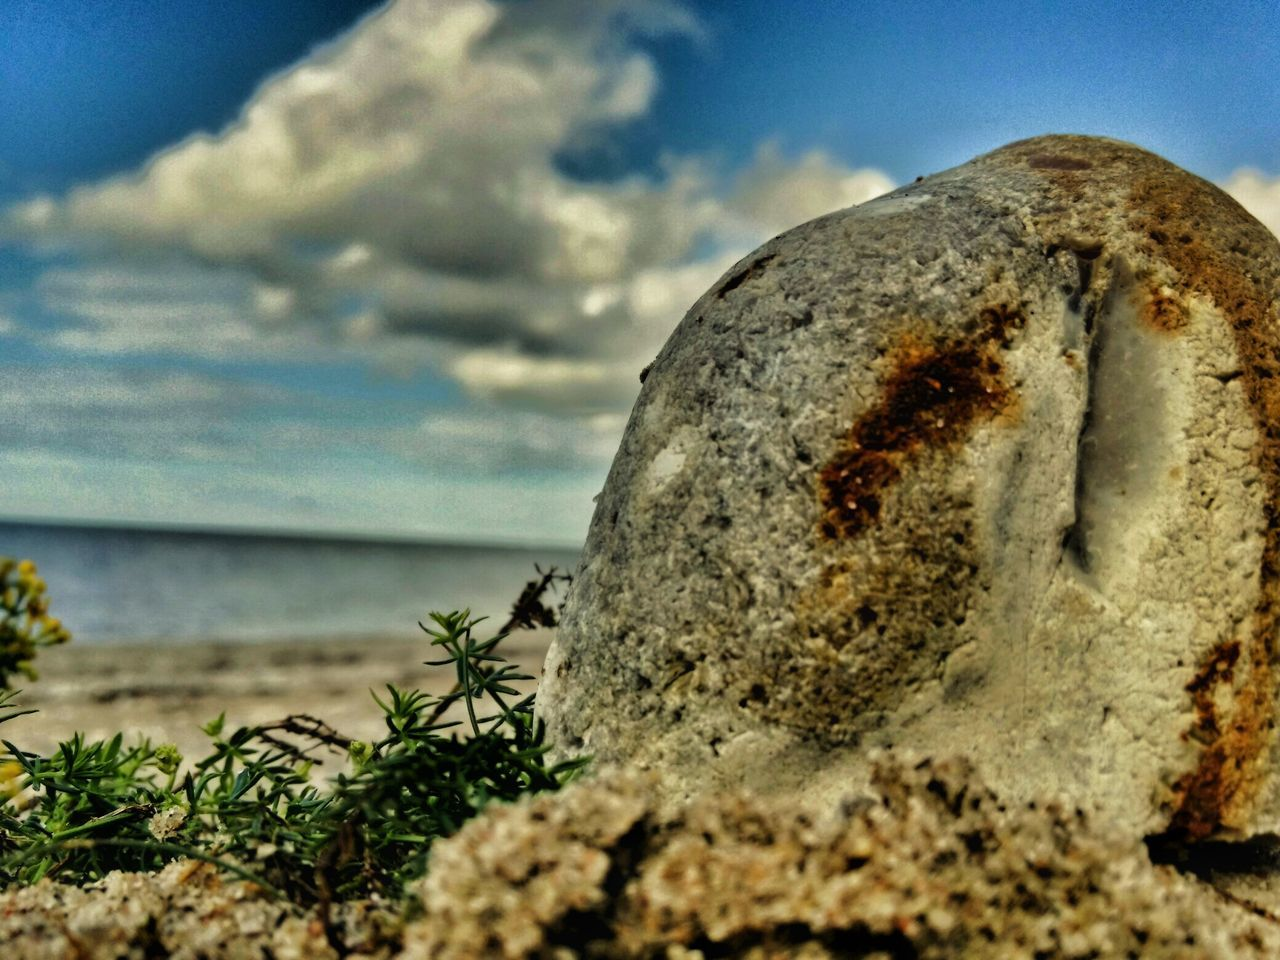 sky, rock - object, day, nature, sea, no people, outdoors, close-up, moss, beach, water, horizon over water, beauty in nature